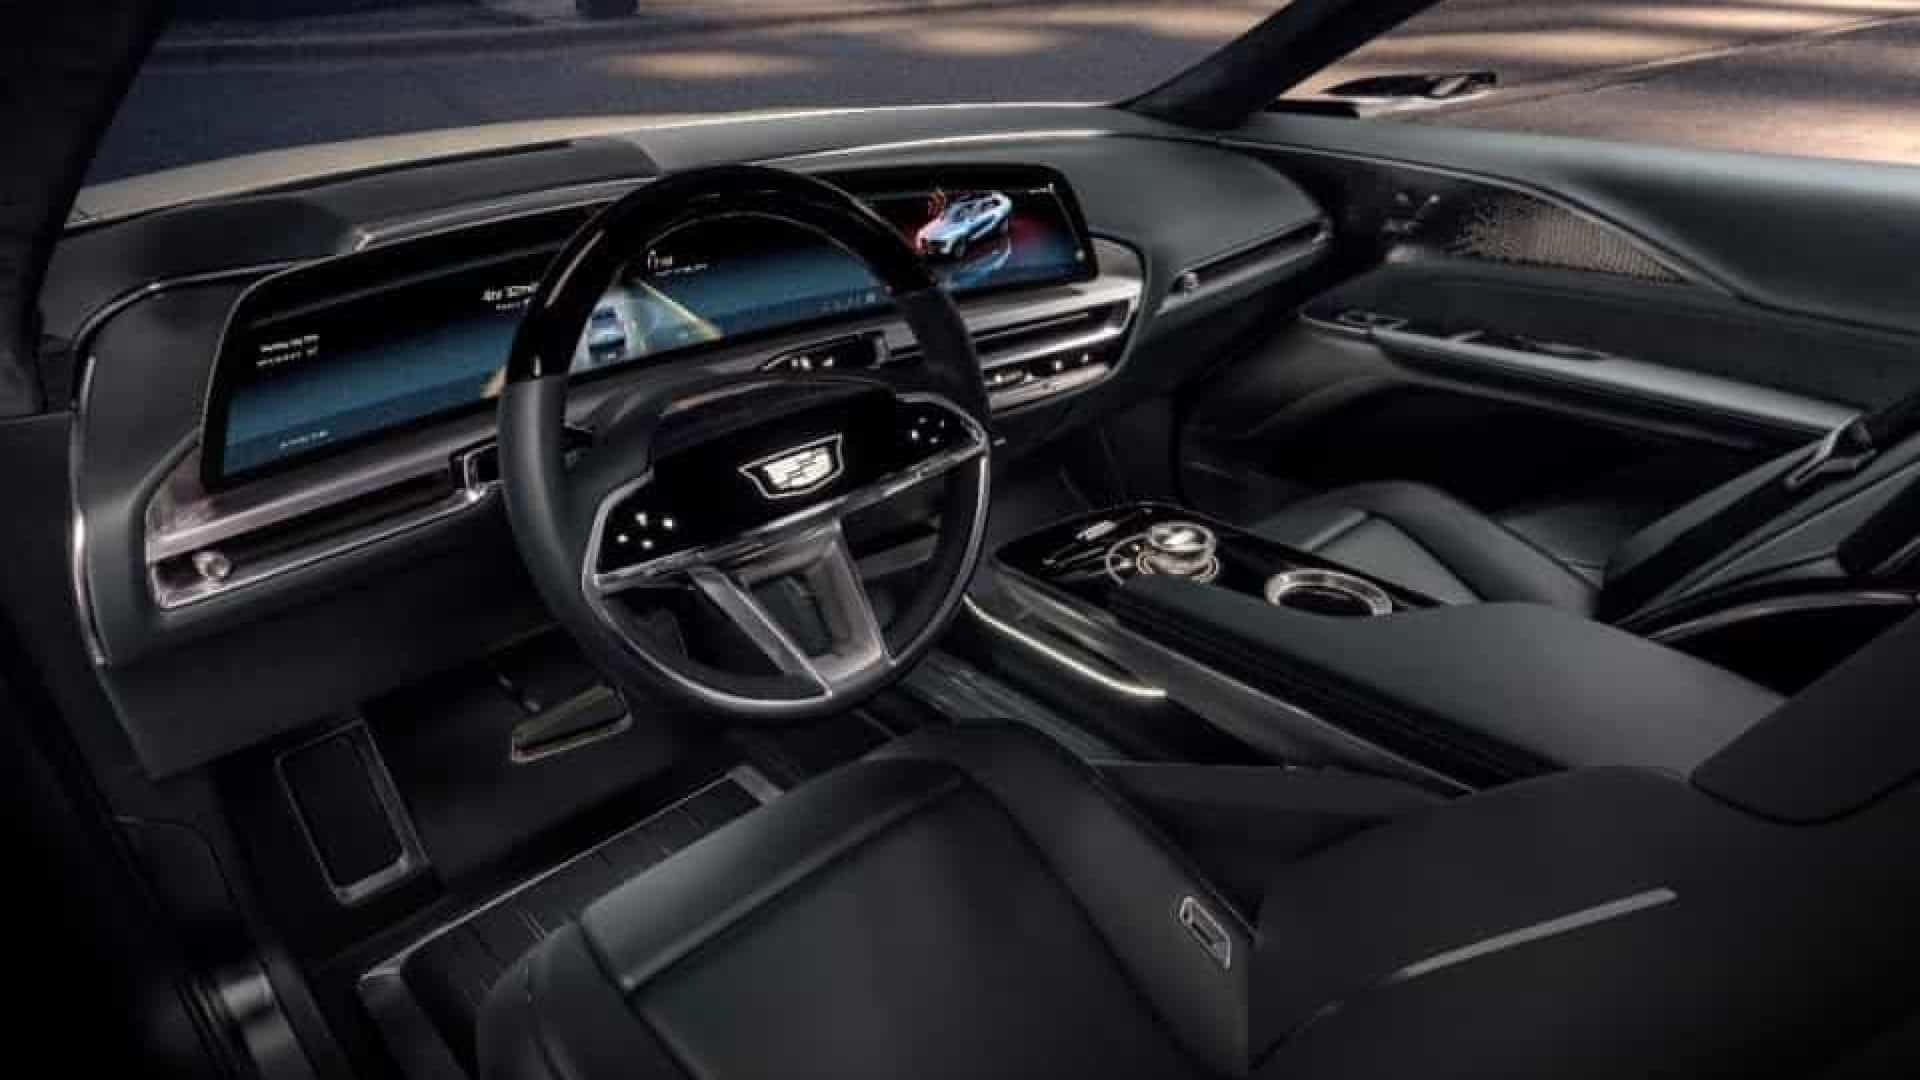 General Motors revela interior do Cadillac elétrico